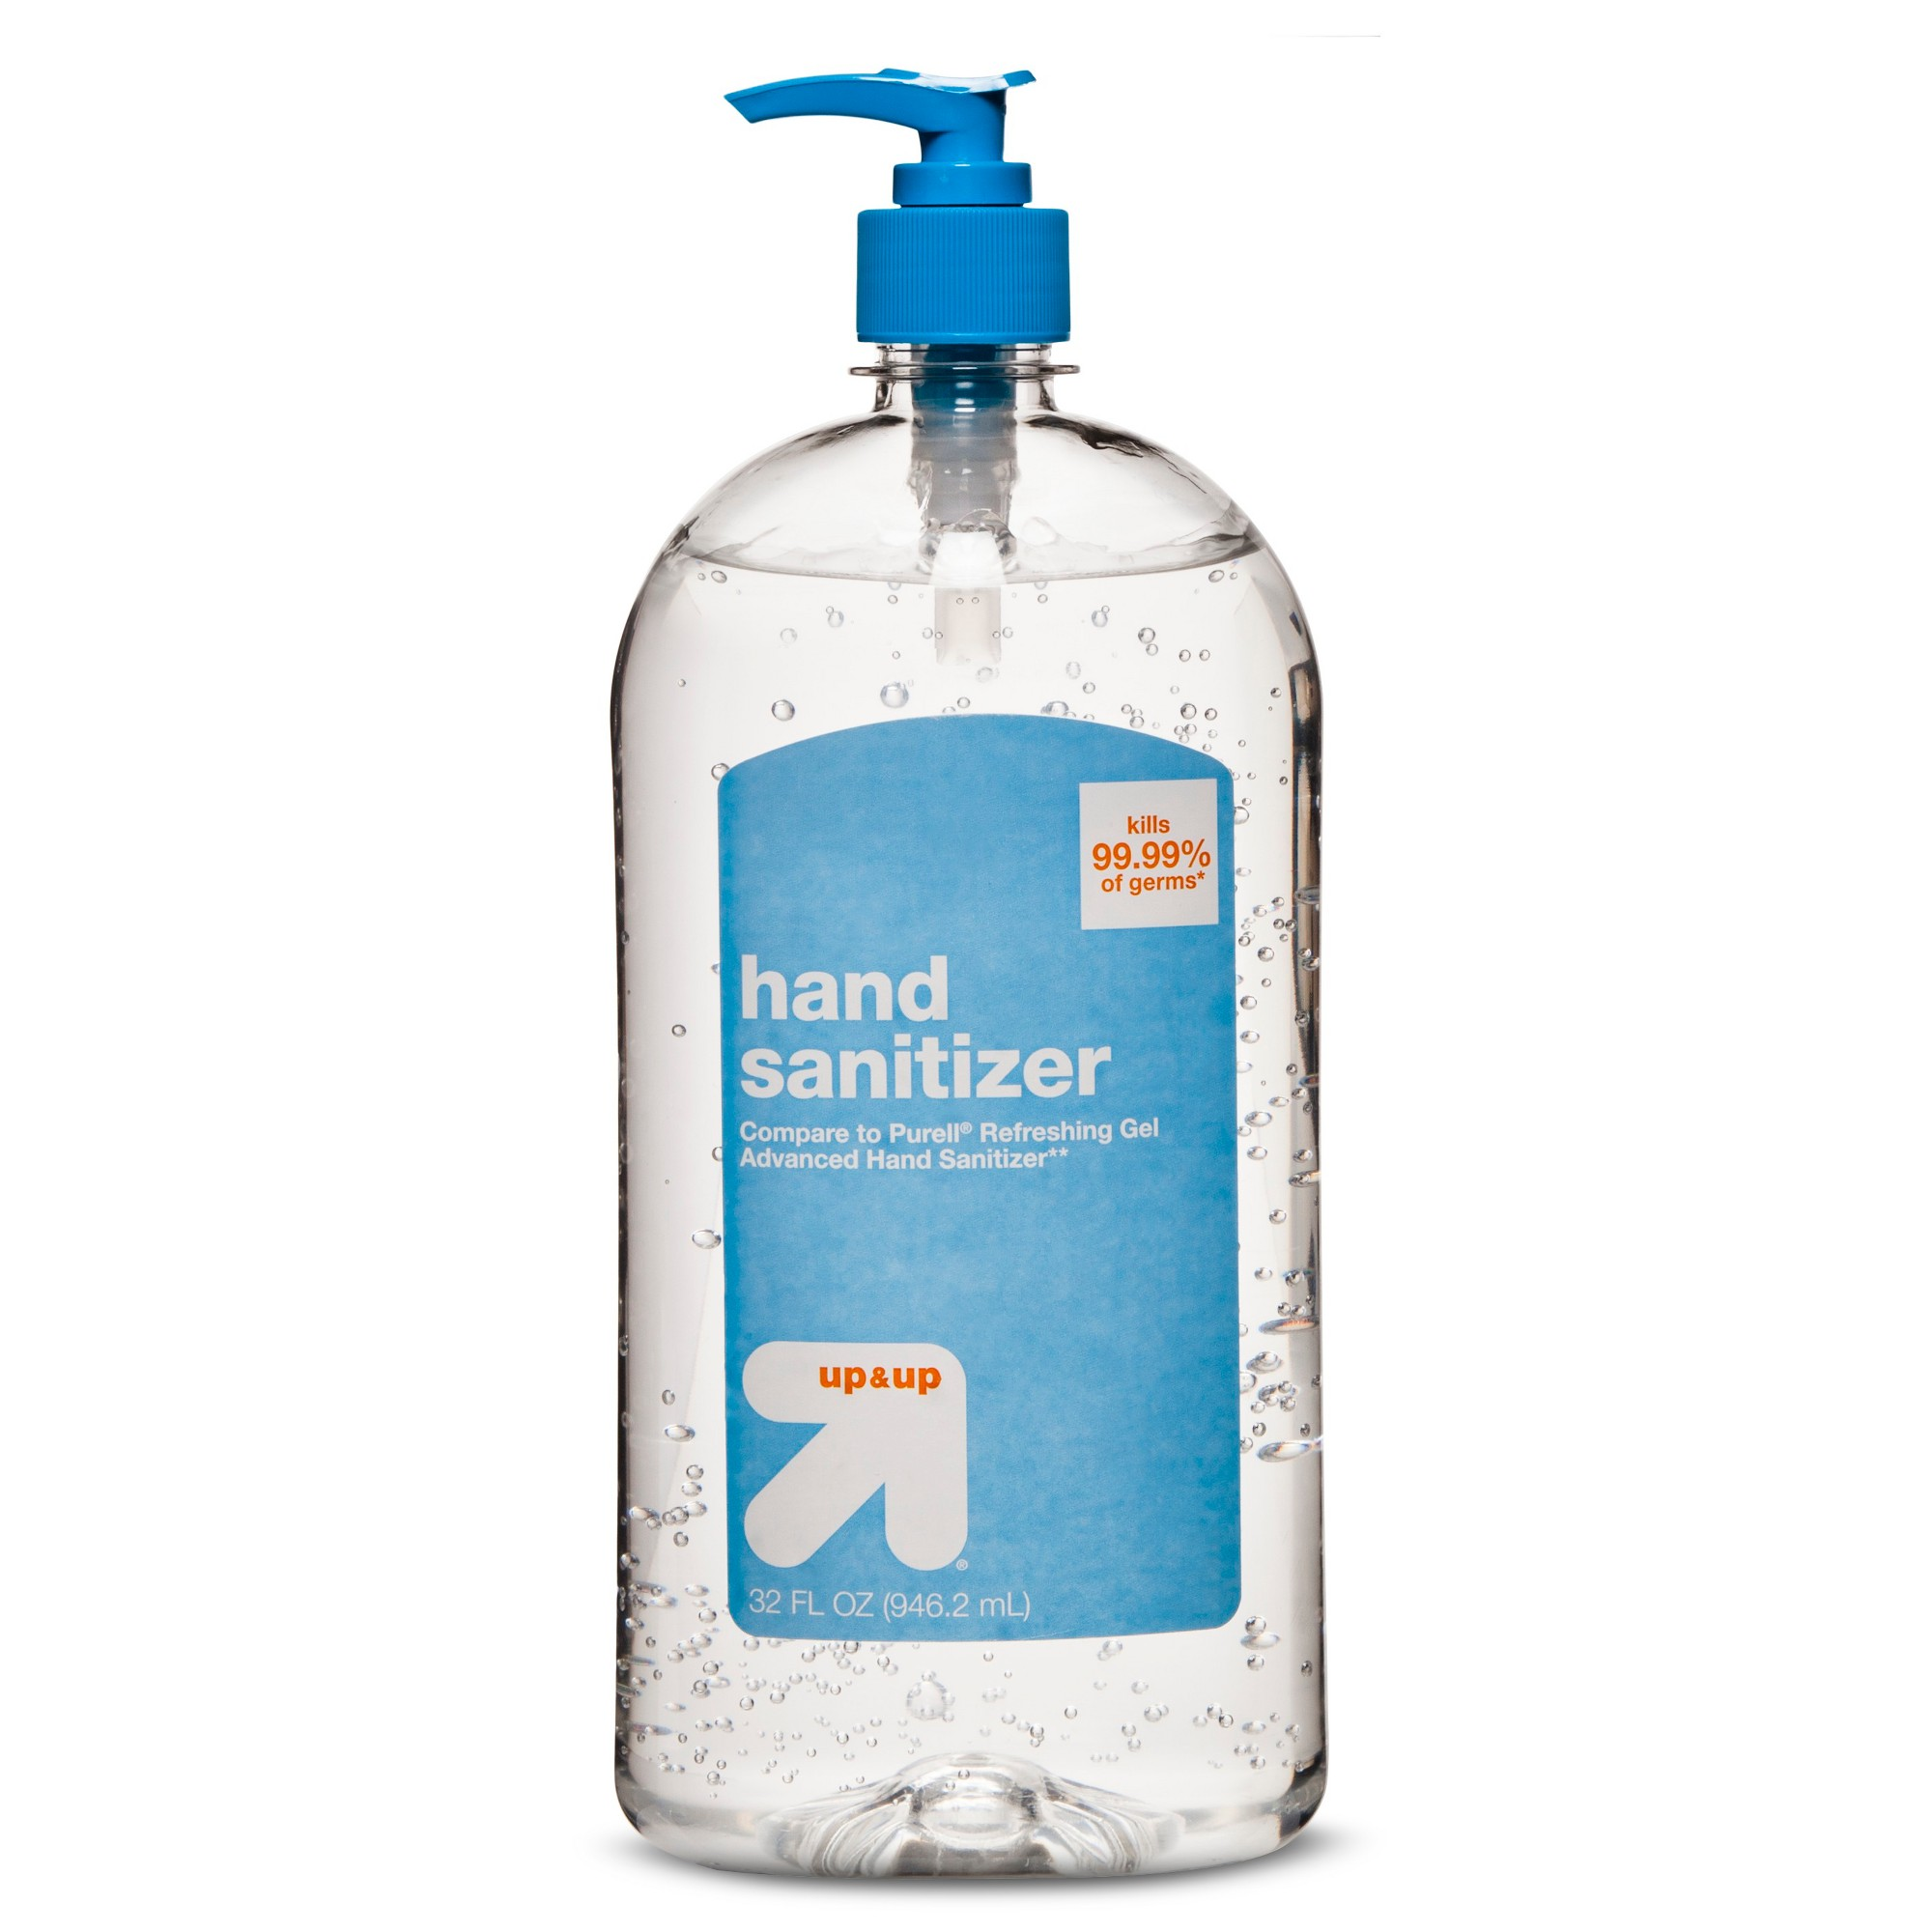 Hand Sanitizer 32 Fl Oz Up Up Hand Sanitizer